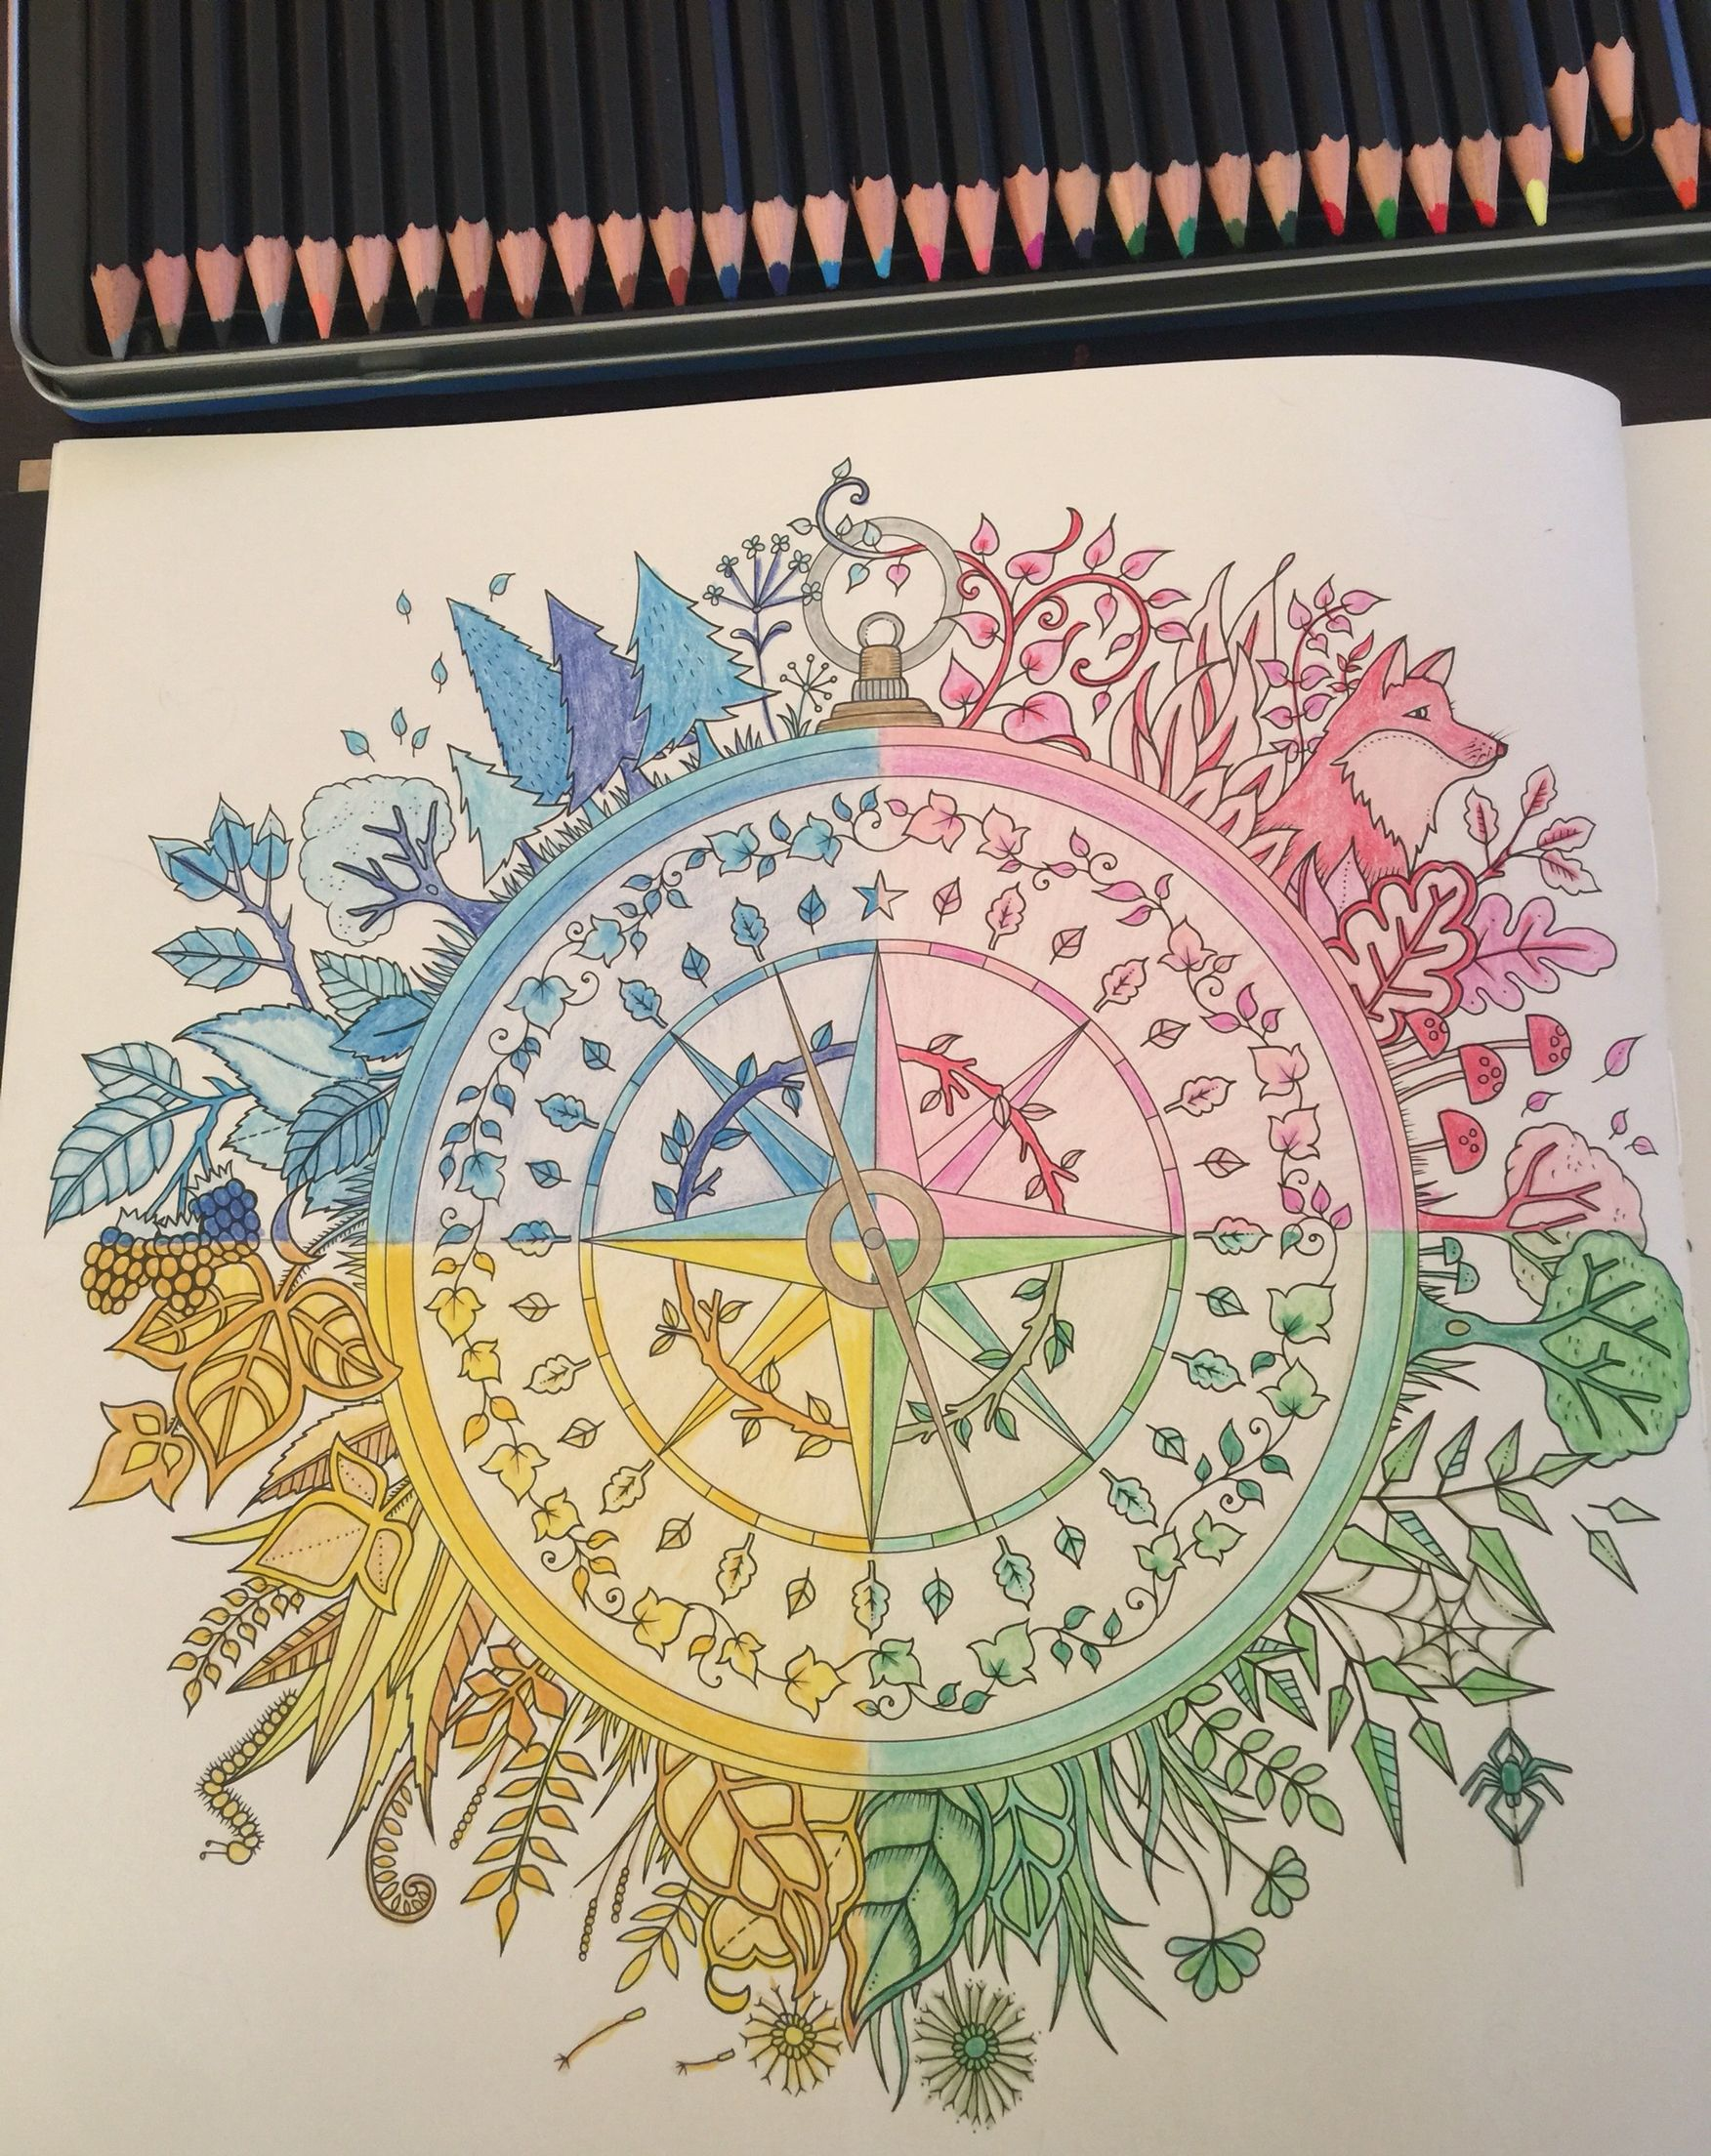 Enchanted Forest Coloring Book Compass Colored By Amber Using Monte Marte Pencils 36 Tin